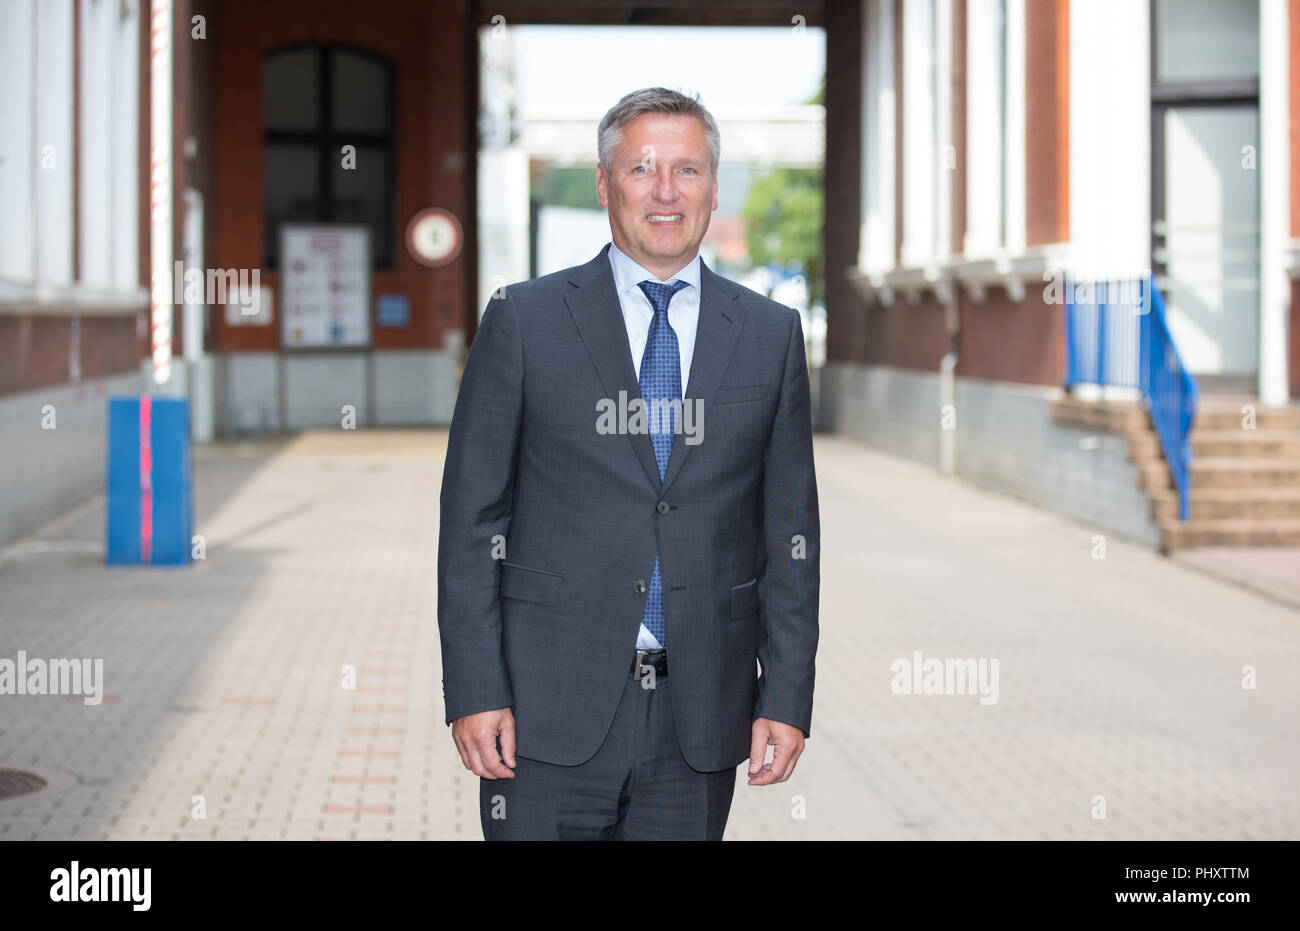 Dissen, Germany. 03rd Sep, 2018. 03.09.2018, Lower Saxony, Dissen: Sönke Renk, spokesman of the Homann management, recorded on the premises of the food manufacturer Homann Feinkost. The company is owned by the Luxembourg-based Theo Müller Group. Credit: Friso Gentsch/dpa/Alamy Live News - Stock Image